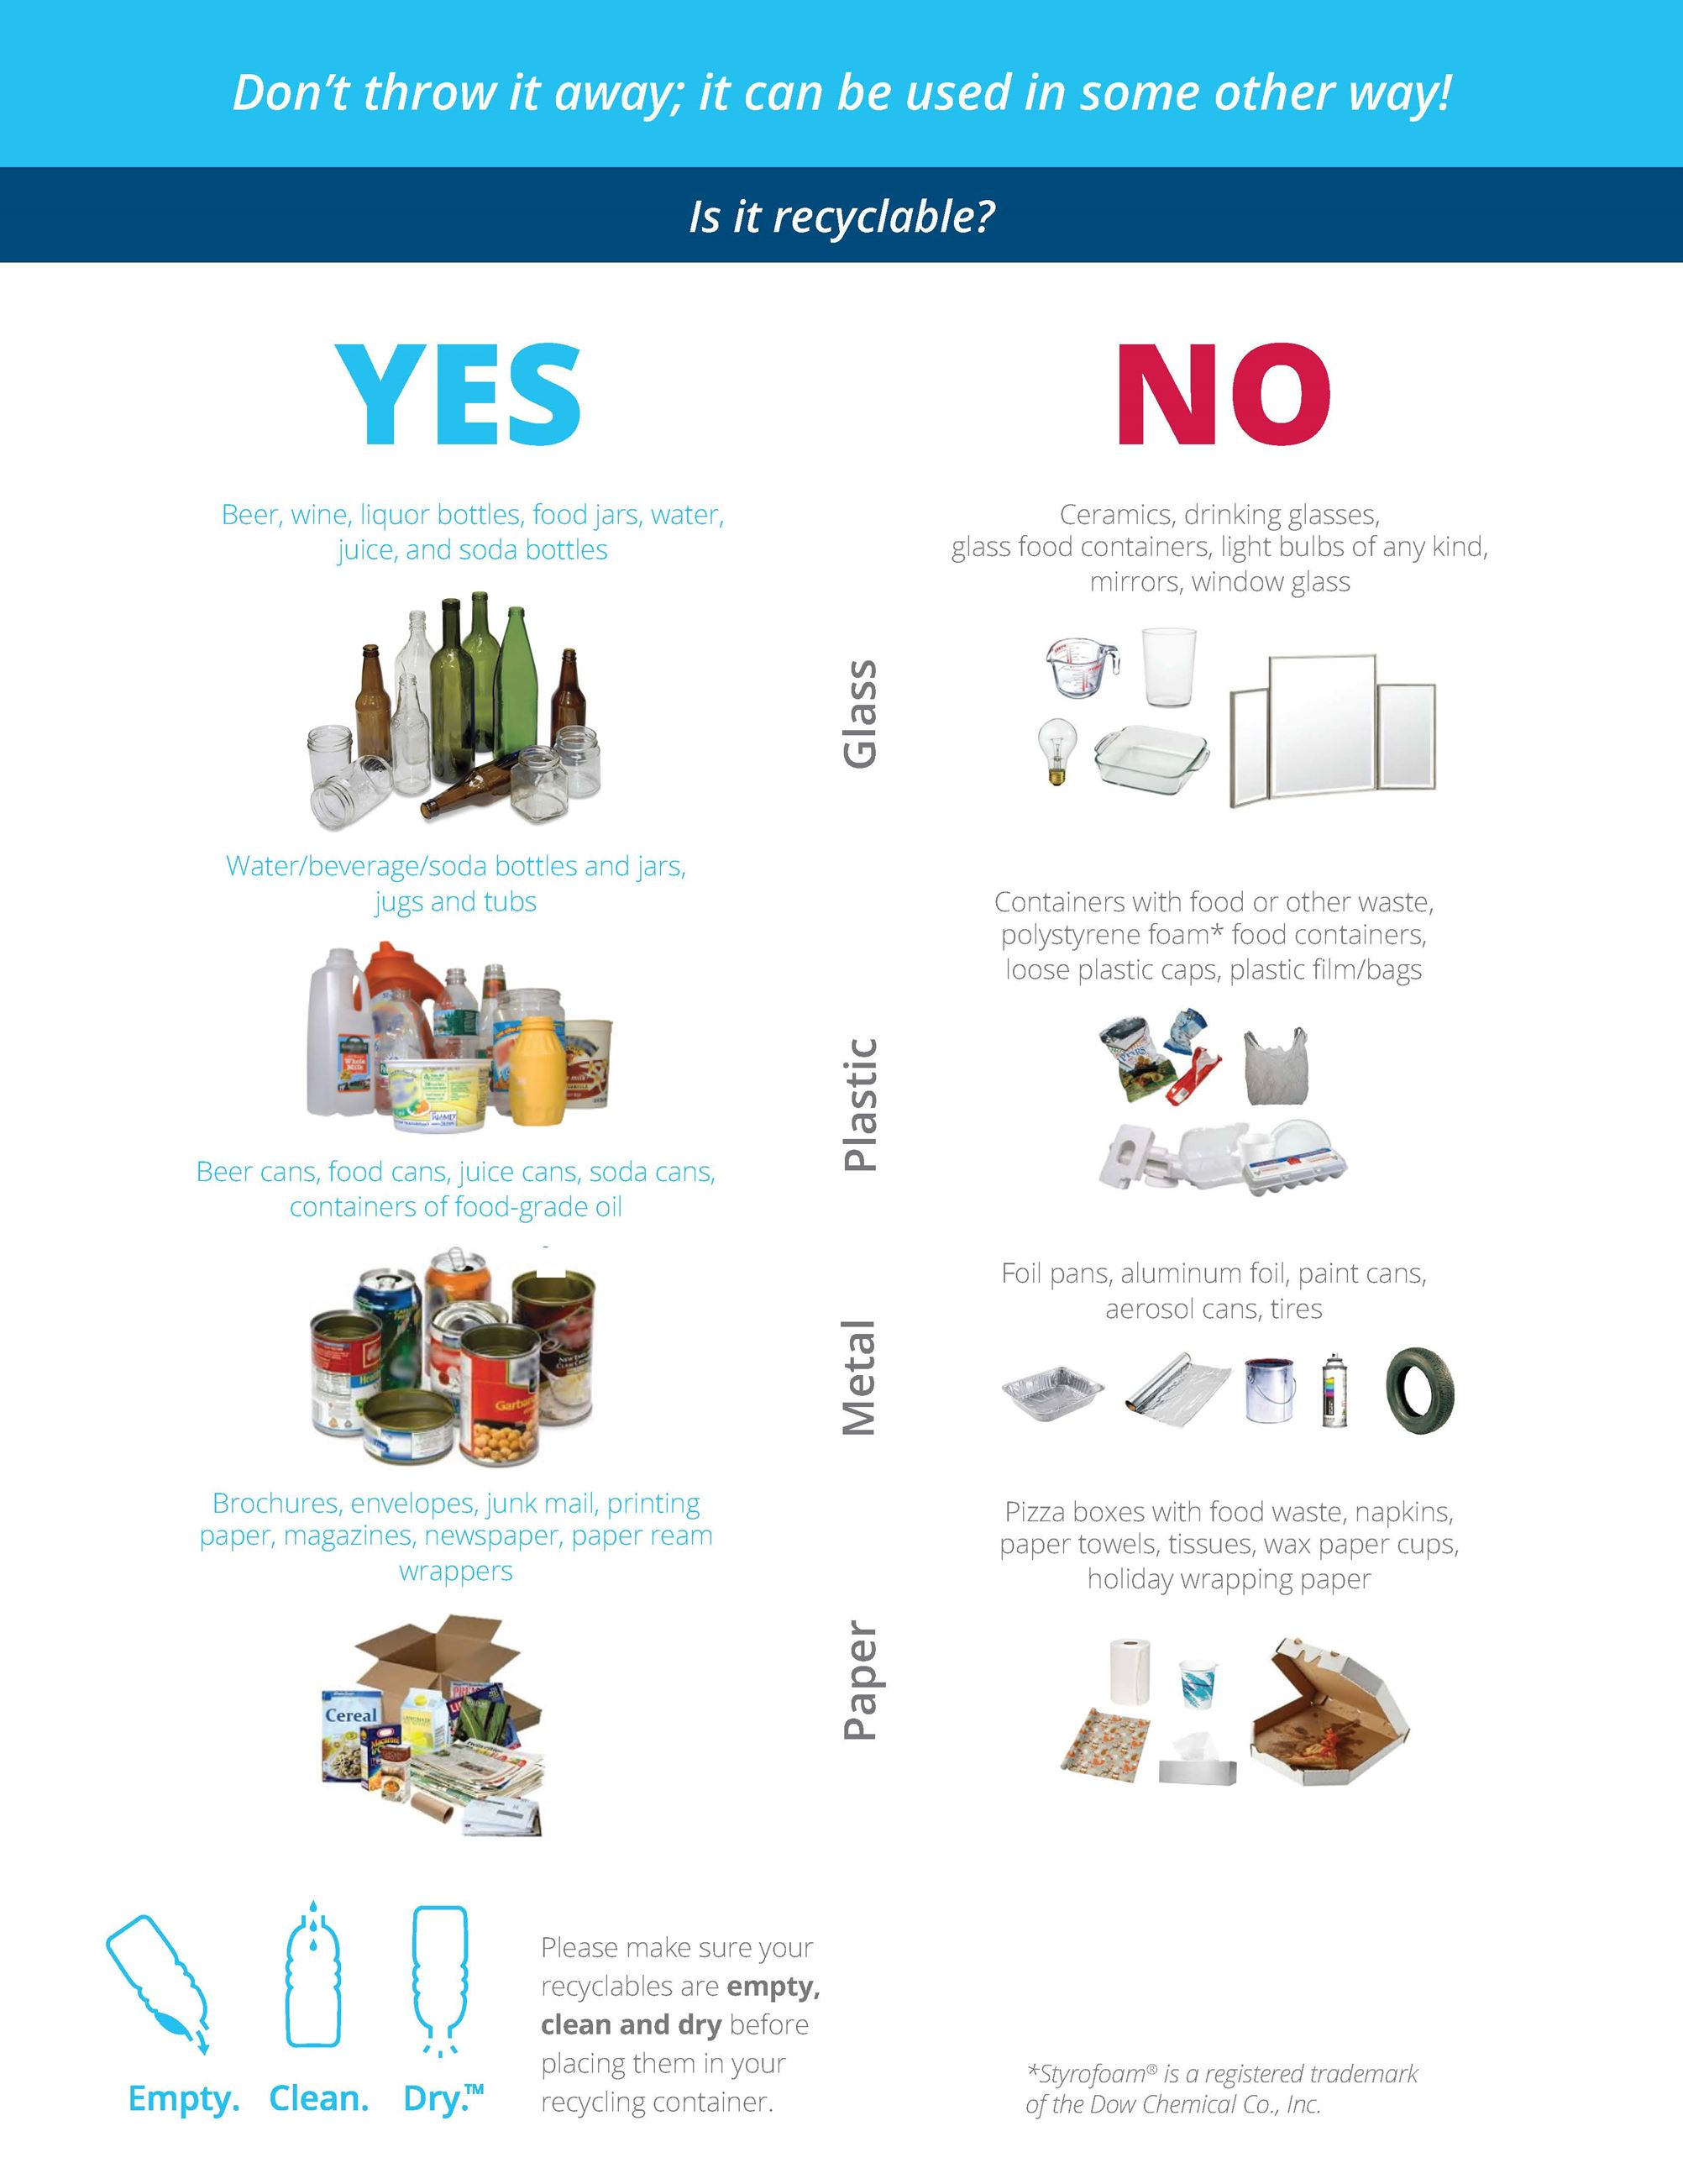 A picture of the cover page of the 2019 List of Acceptable Items for Recycling. Opens in new window